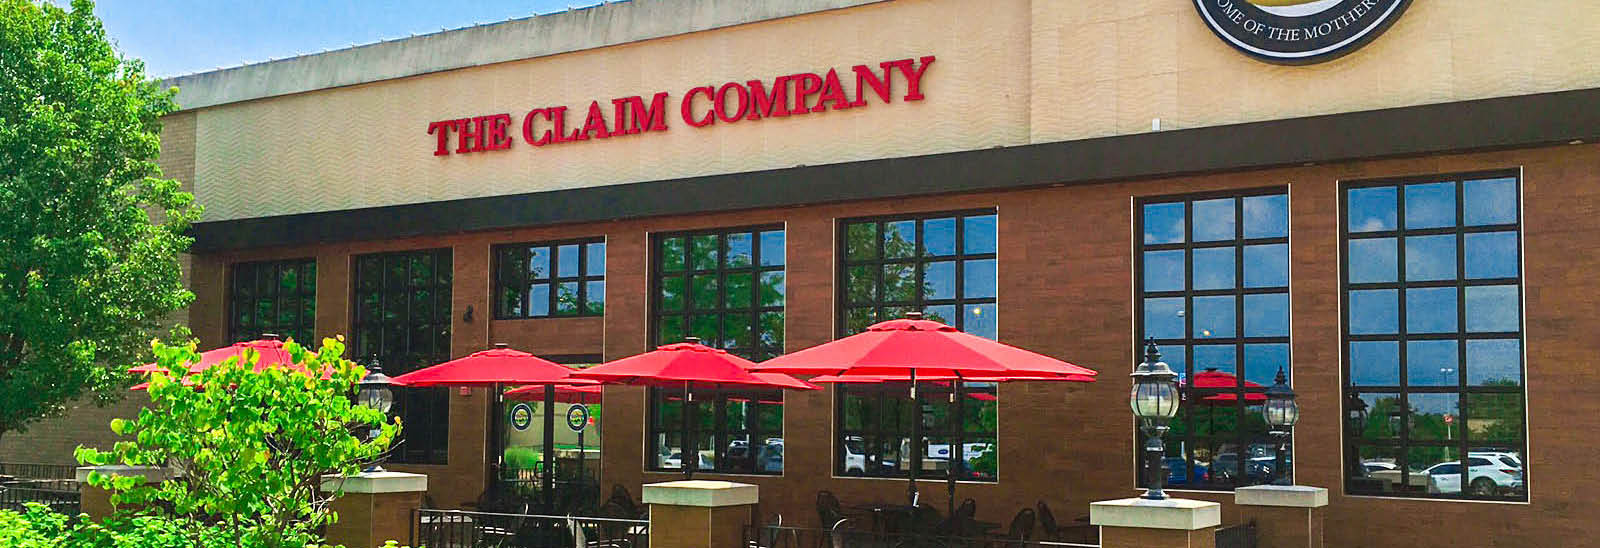 The Claim Company Restaurant outdoor patio in Vernon Hills, IL banner